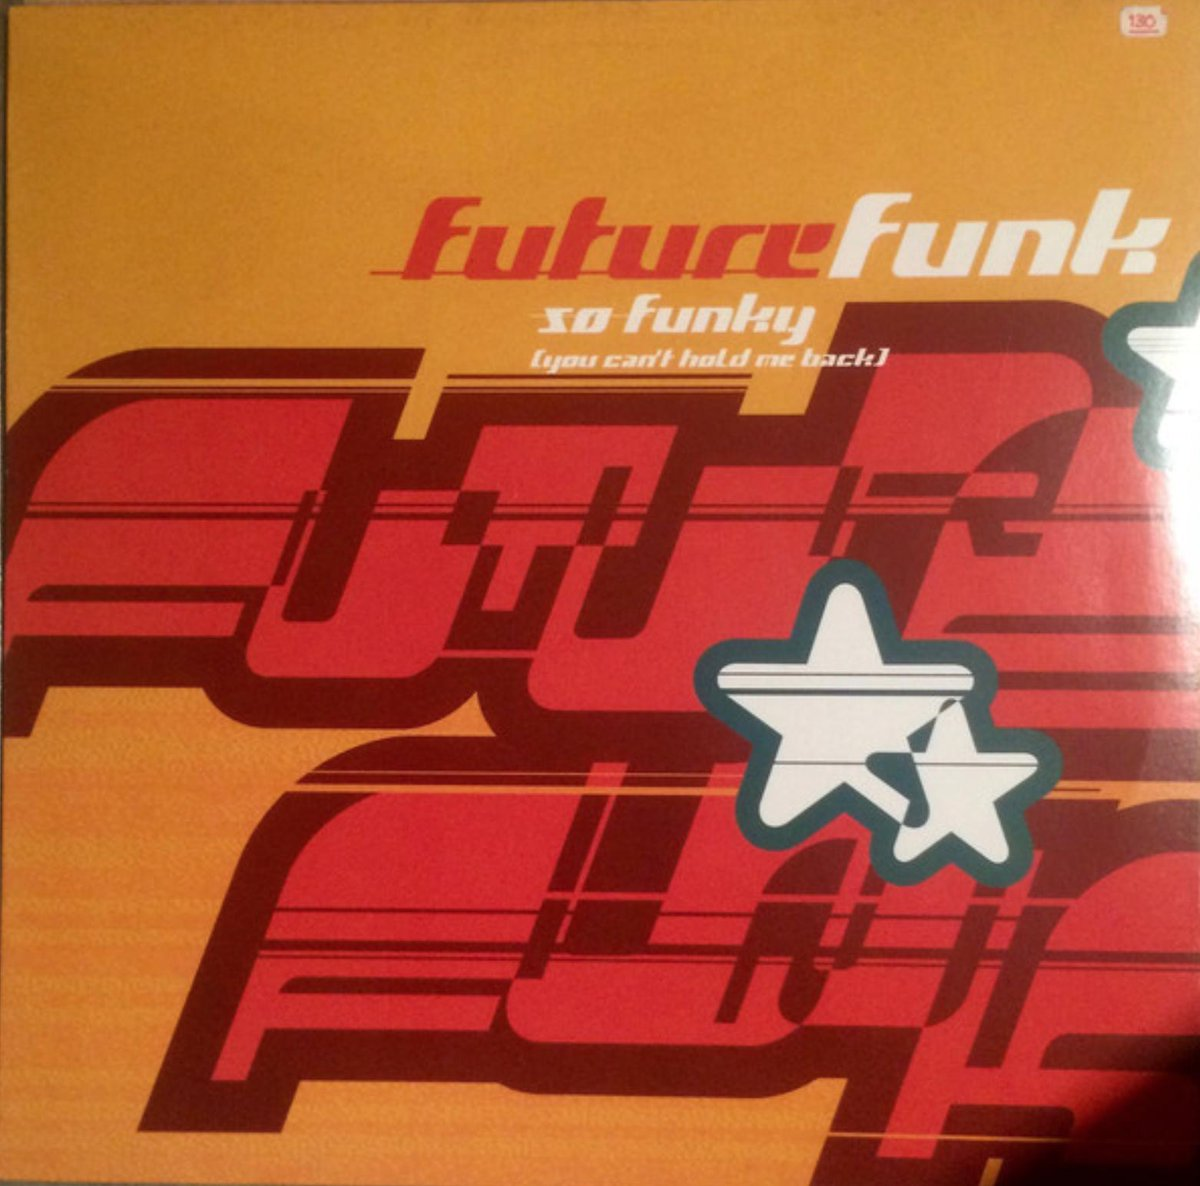 Future Funk – So Funky (You Can't Hold Me Back) (1999) <br>http://pic.twitter.com/UQ659ZFZKN